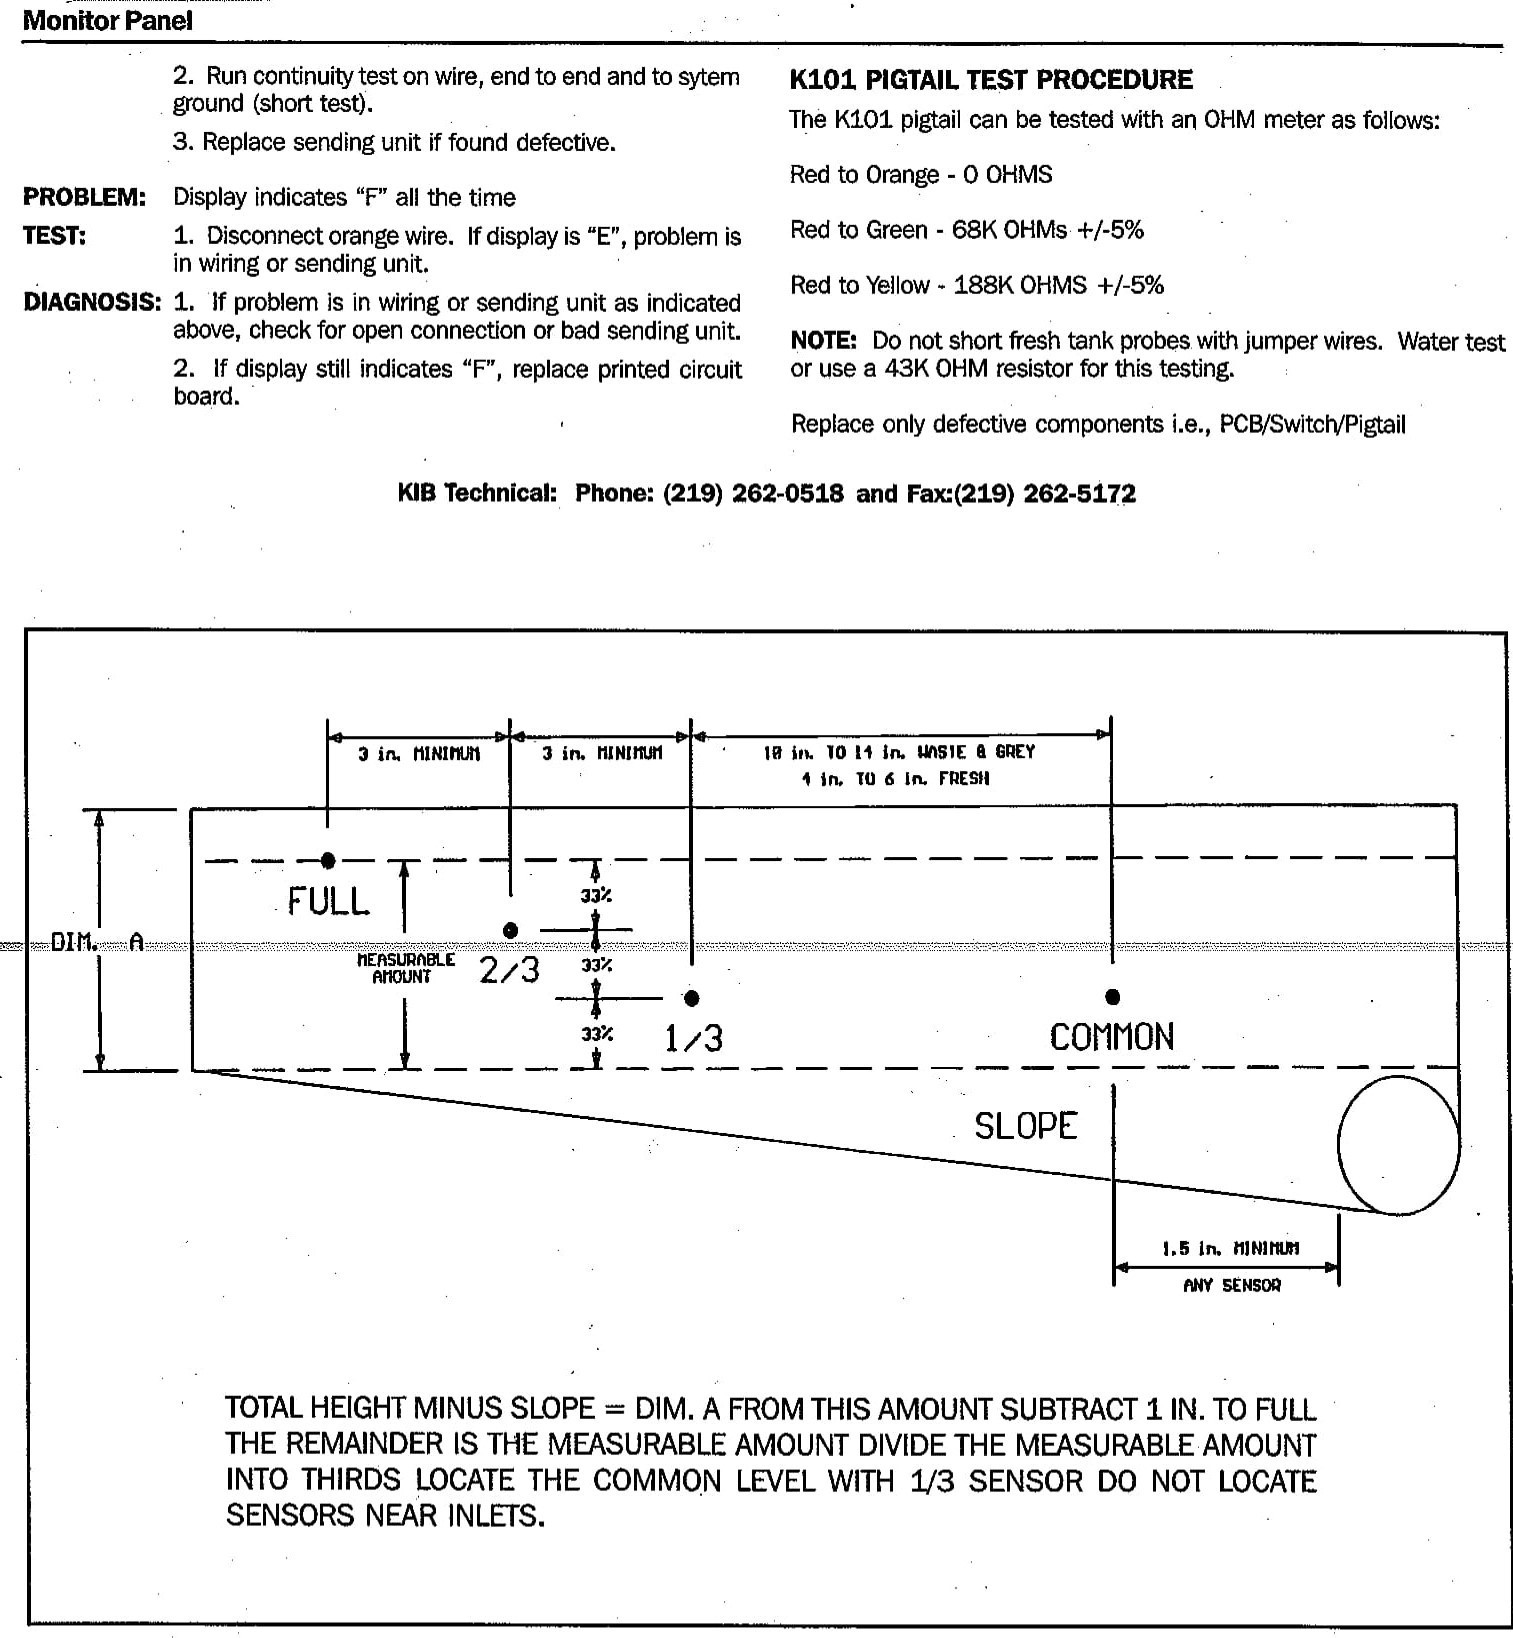 Kib M2207 Wire Schematic Kib Systems Monitor Panel Schematic Of Kib M2207 Wire Schematic